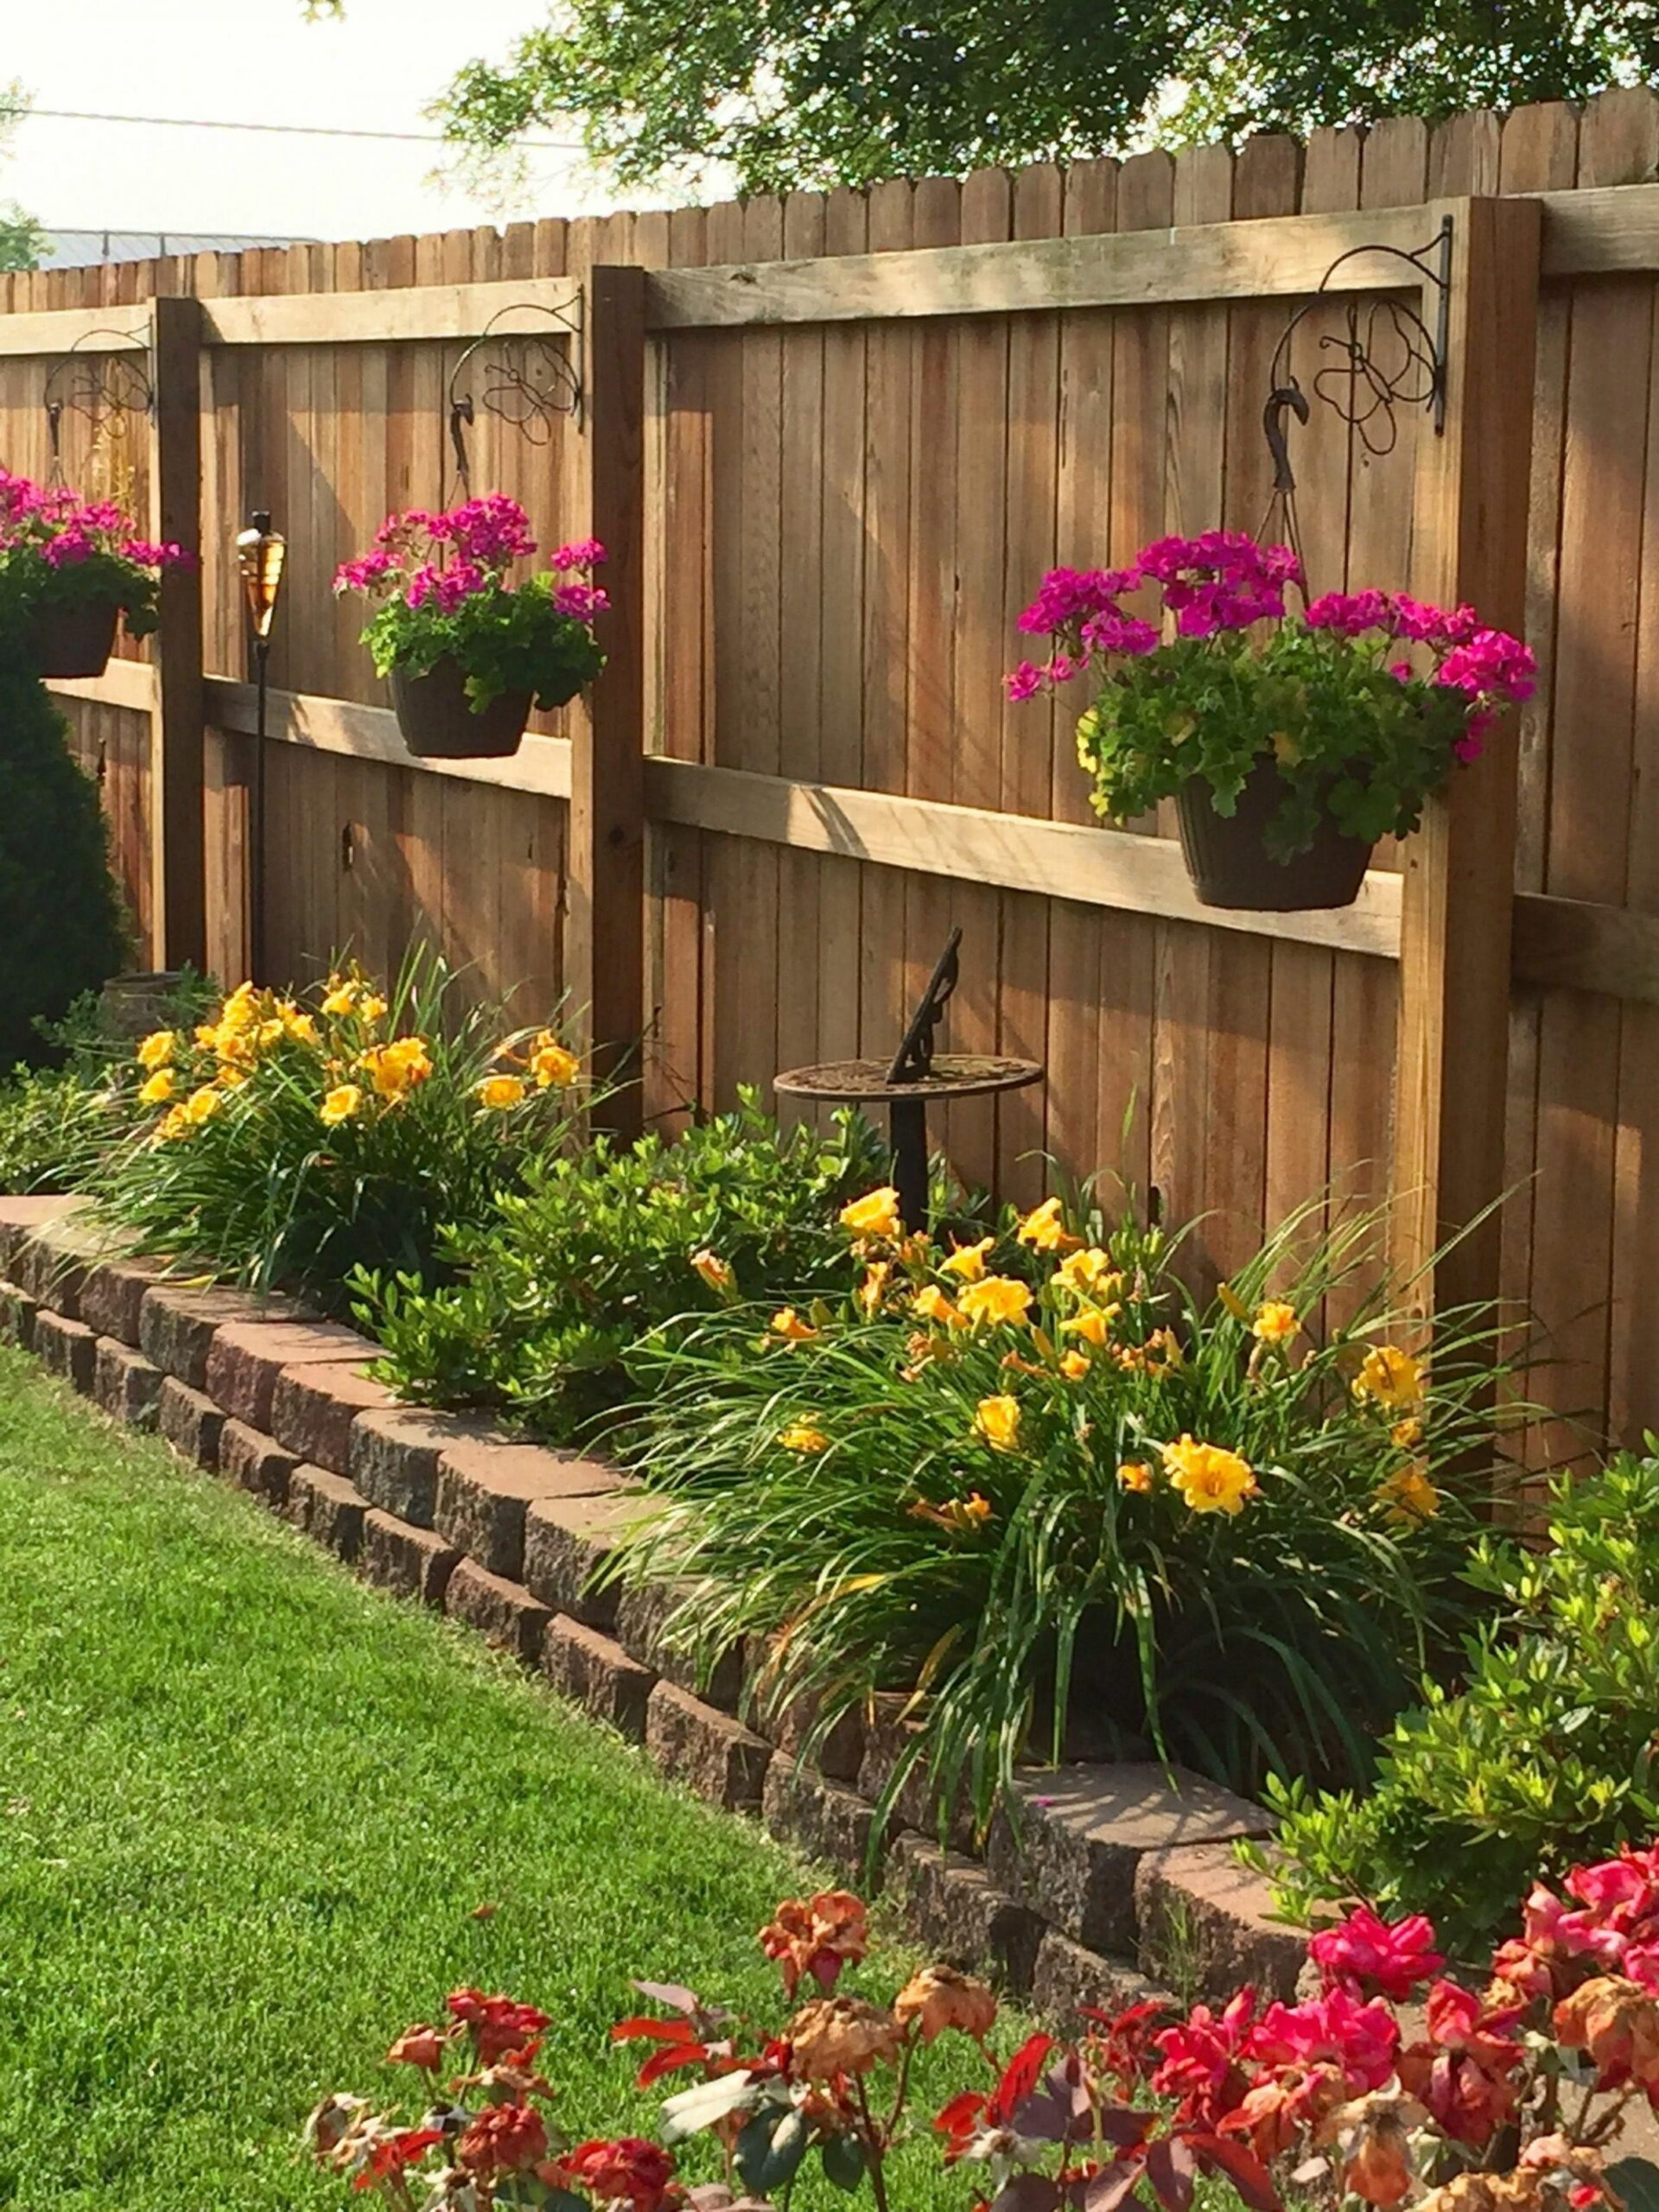 All about backyard landscaping ideas on a budget, small, layout ...